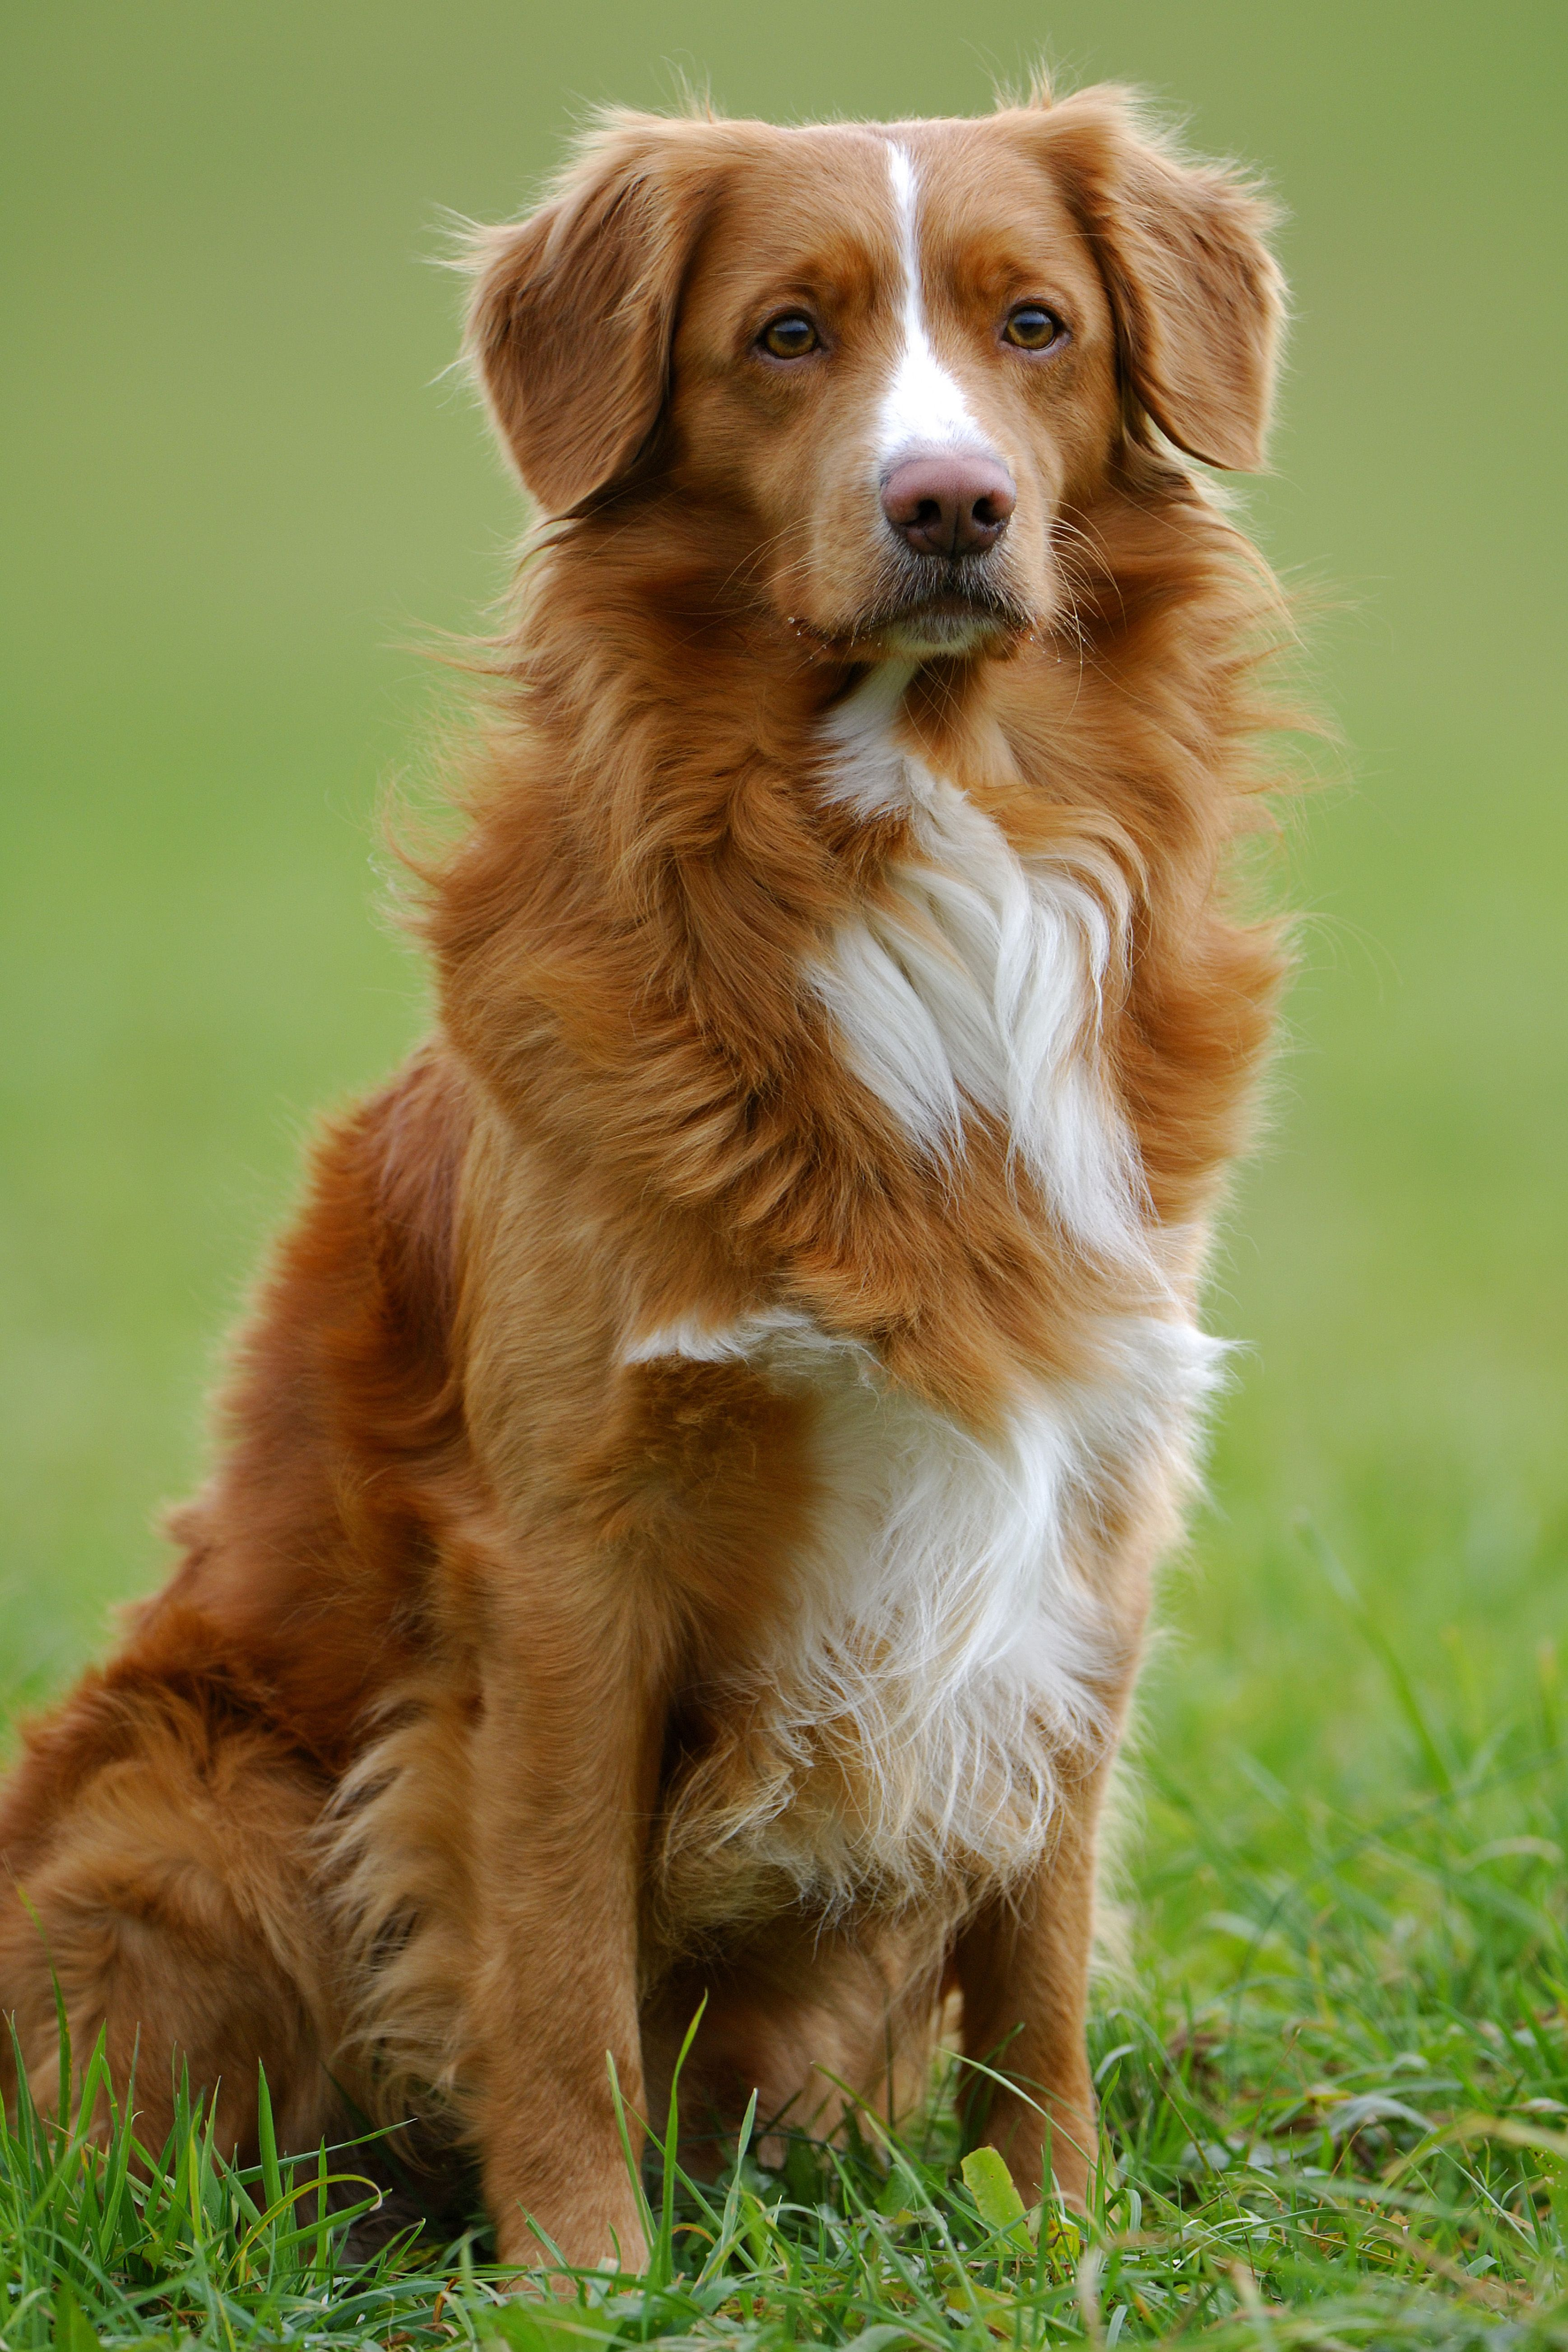 These Dog Breeds Are The Most Intelligent Experts Say Cute Dogs